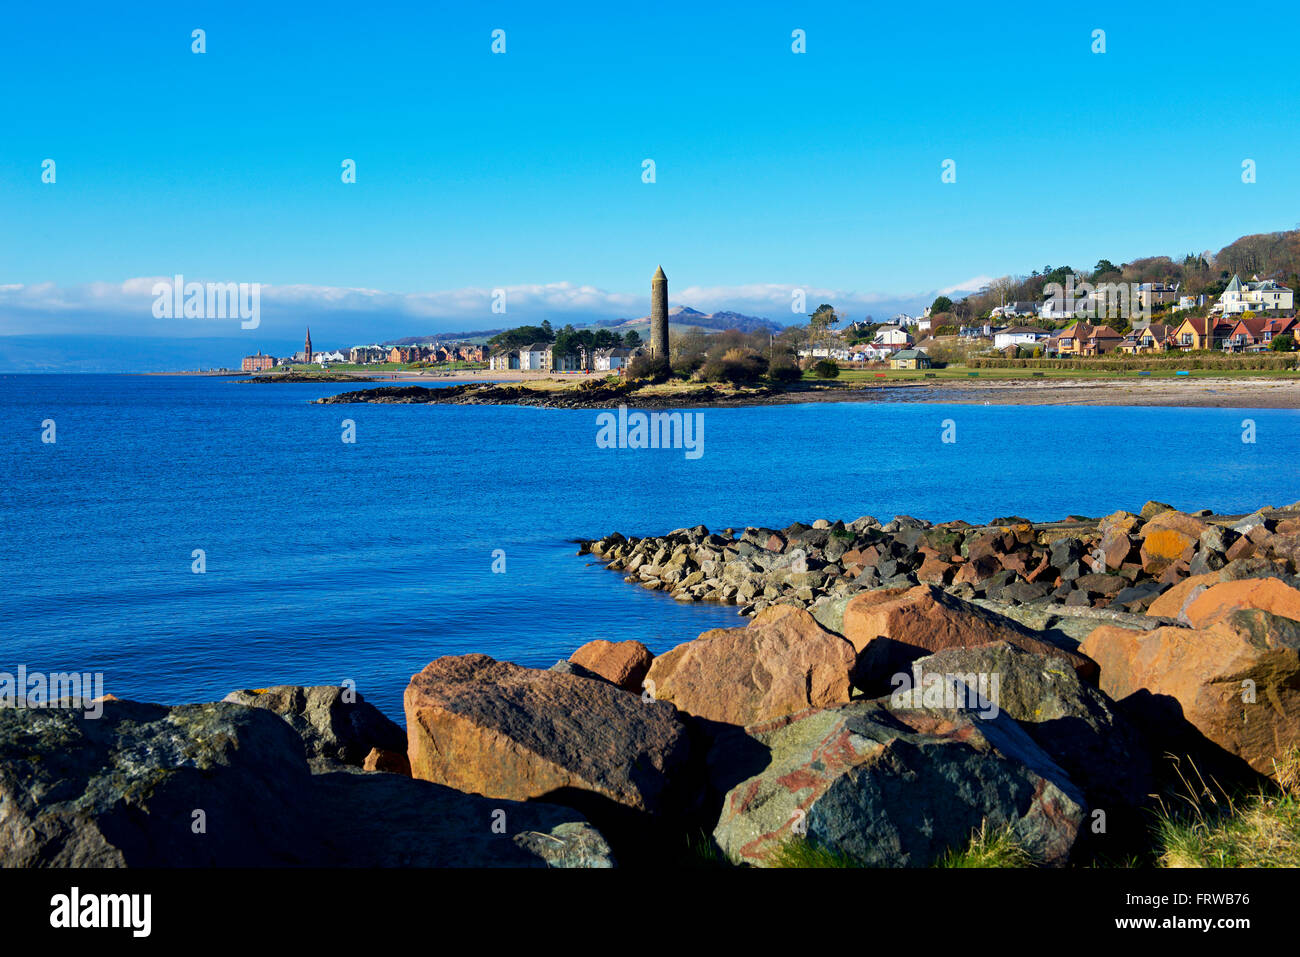 Largs, North Ayrshire, Scotland UK - Stock Image